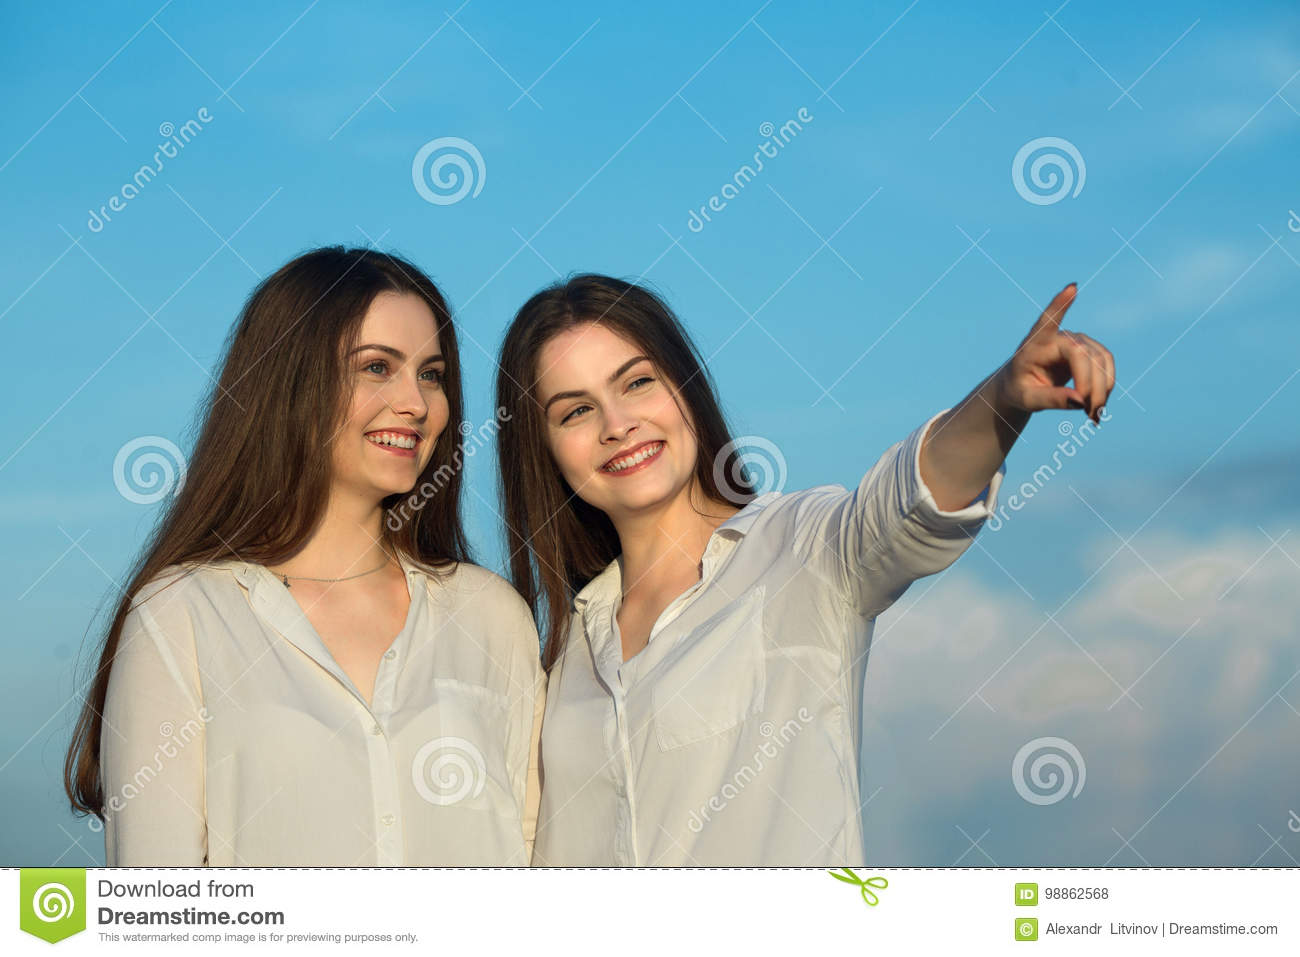 f2679b63a28 Two Beautiful Young Sisters Twin Girls Stock Photo - Image of love ...